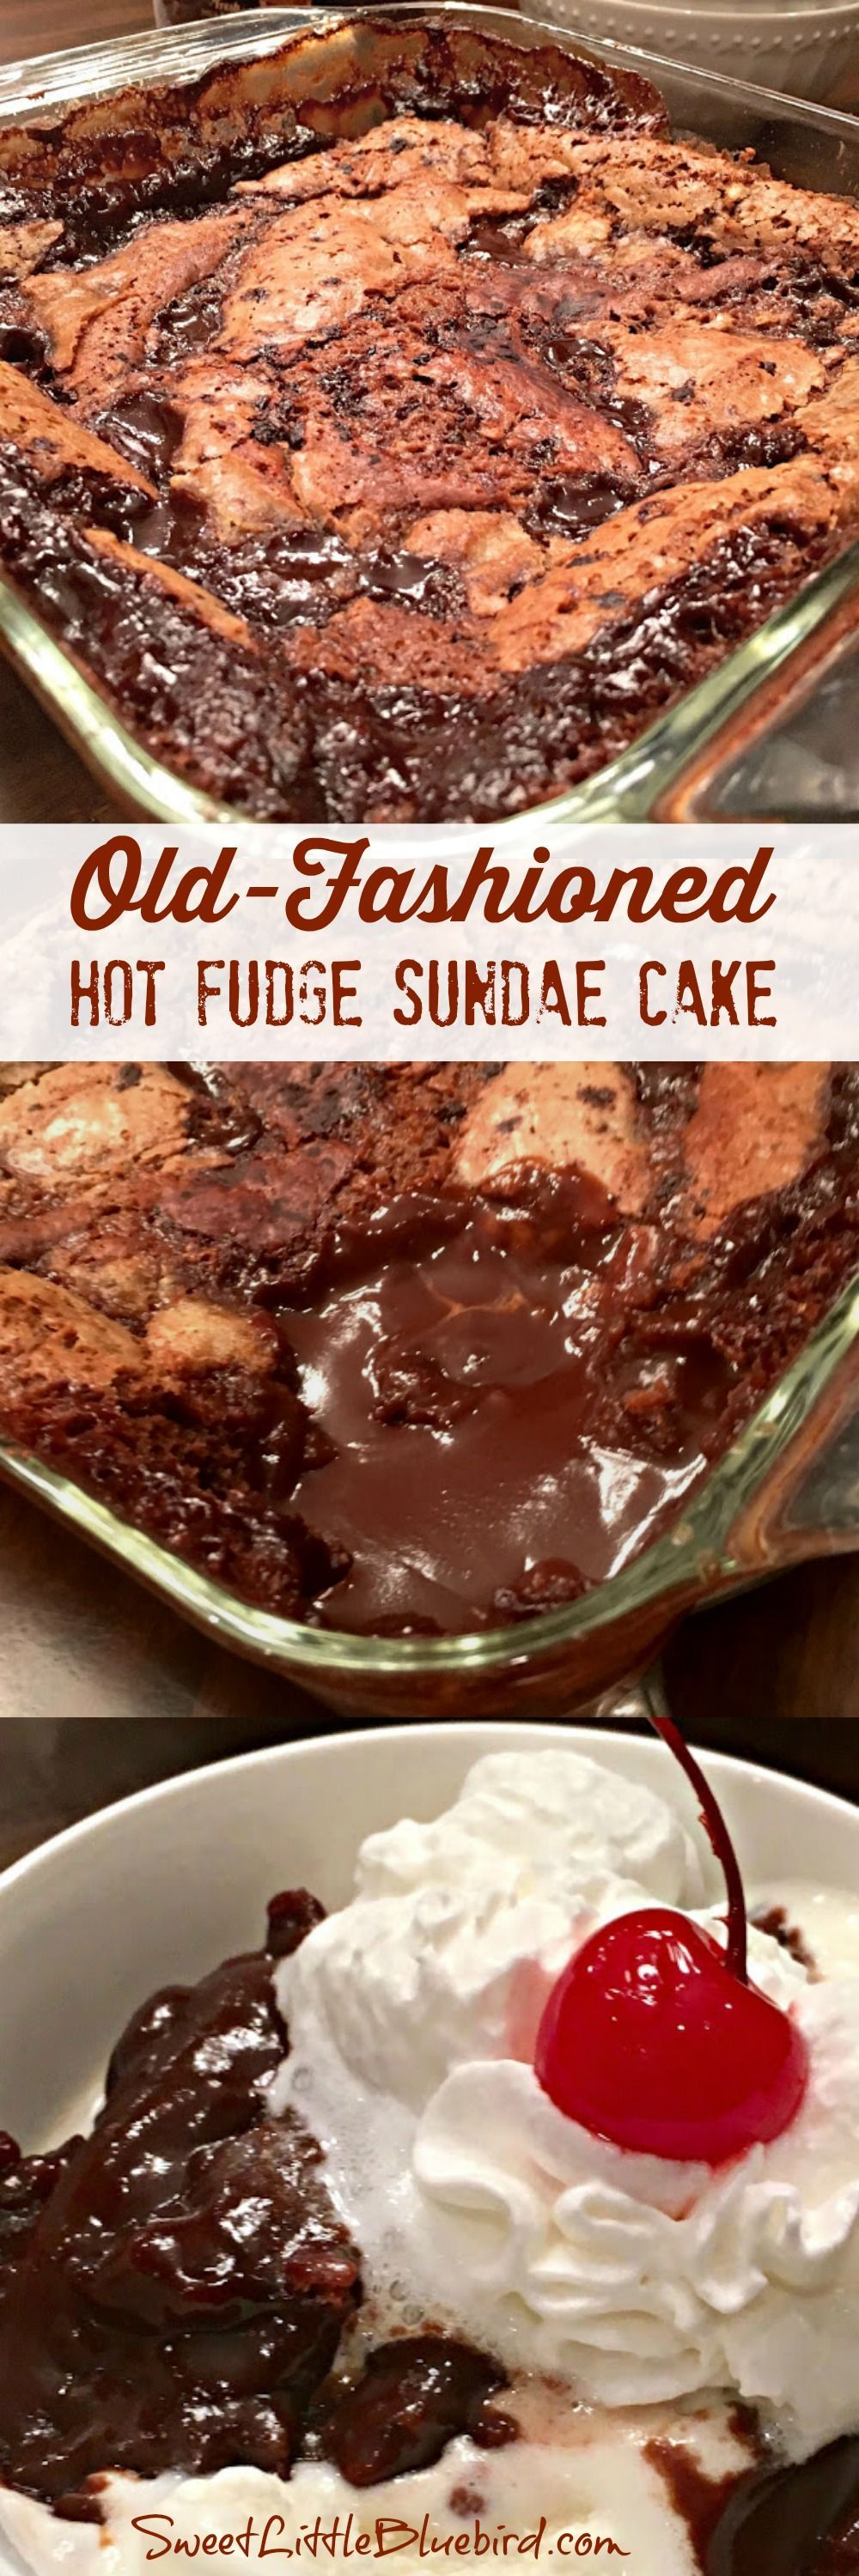 Old-Fashioned Hot Fudge Sundae Cake Today's tried & true is a fantastic oldie but goodie recipe from Betty Crocker - Old-Fashioned Hot Fudge Sundae Cake! OLD-FASHIONED HOT FUDGE SUNDAE CAKE (aka, Chocolate Cobbler, Hot Fudge Pudding Cake) An ooey #chambreparentale